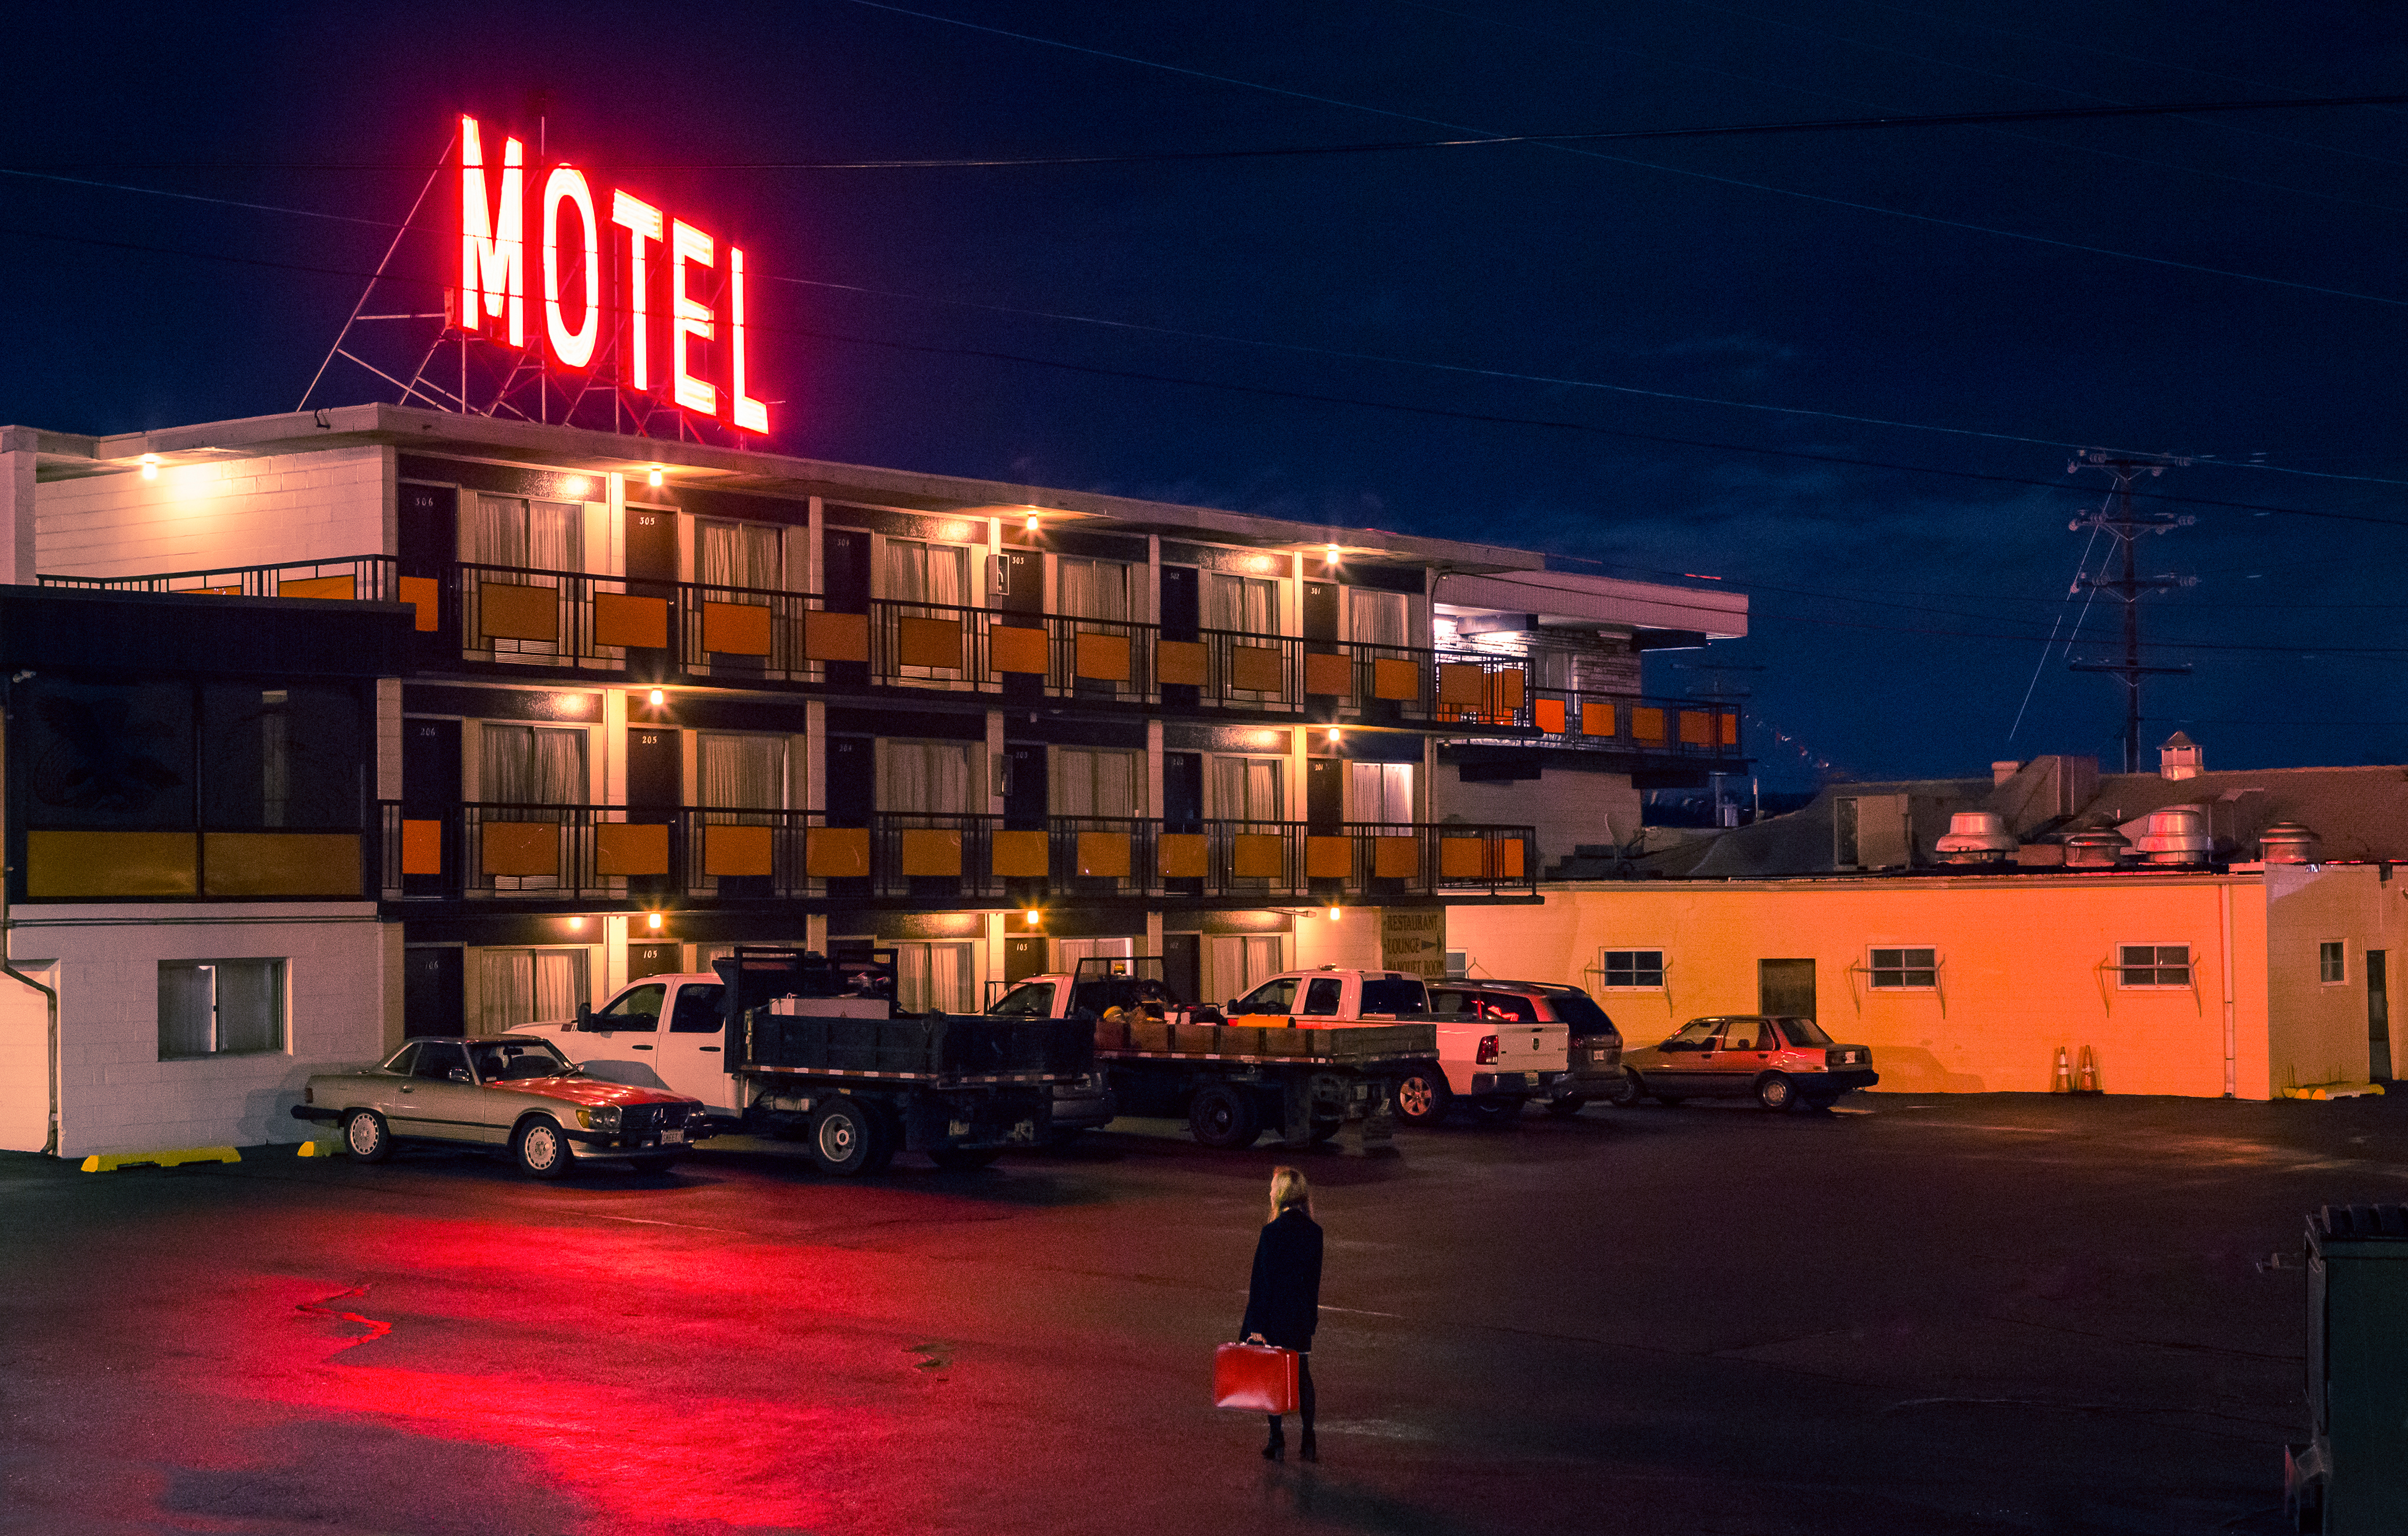 Woman standing with a suitcase looking at a motel